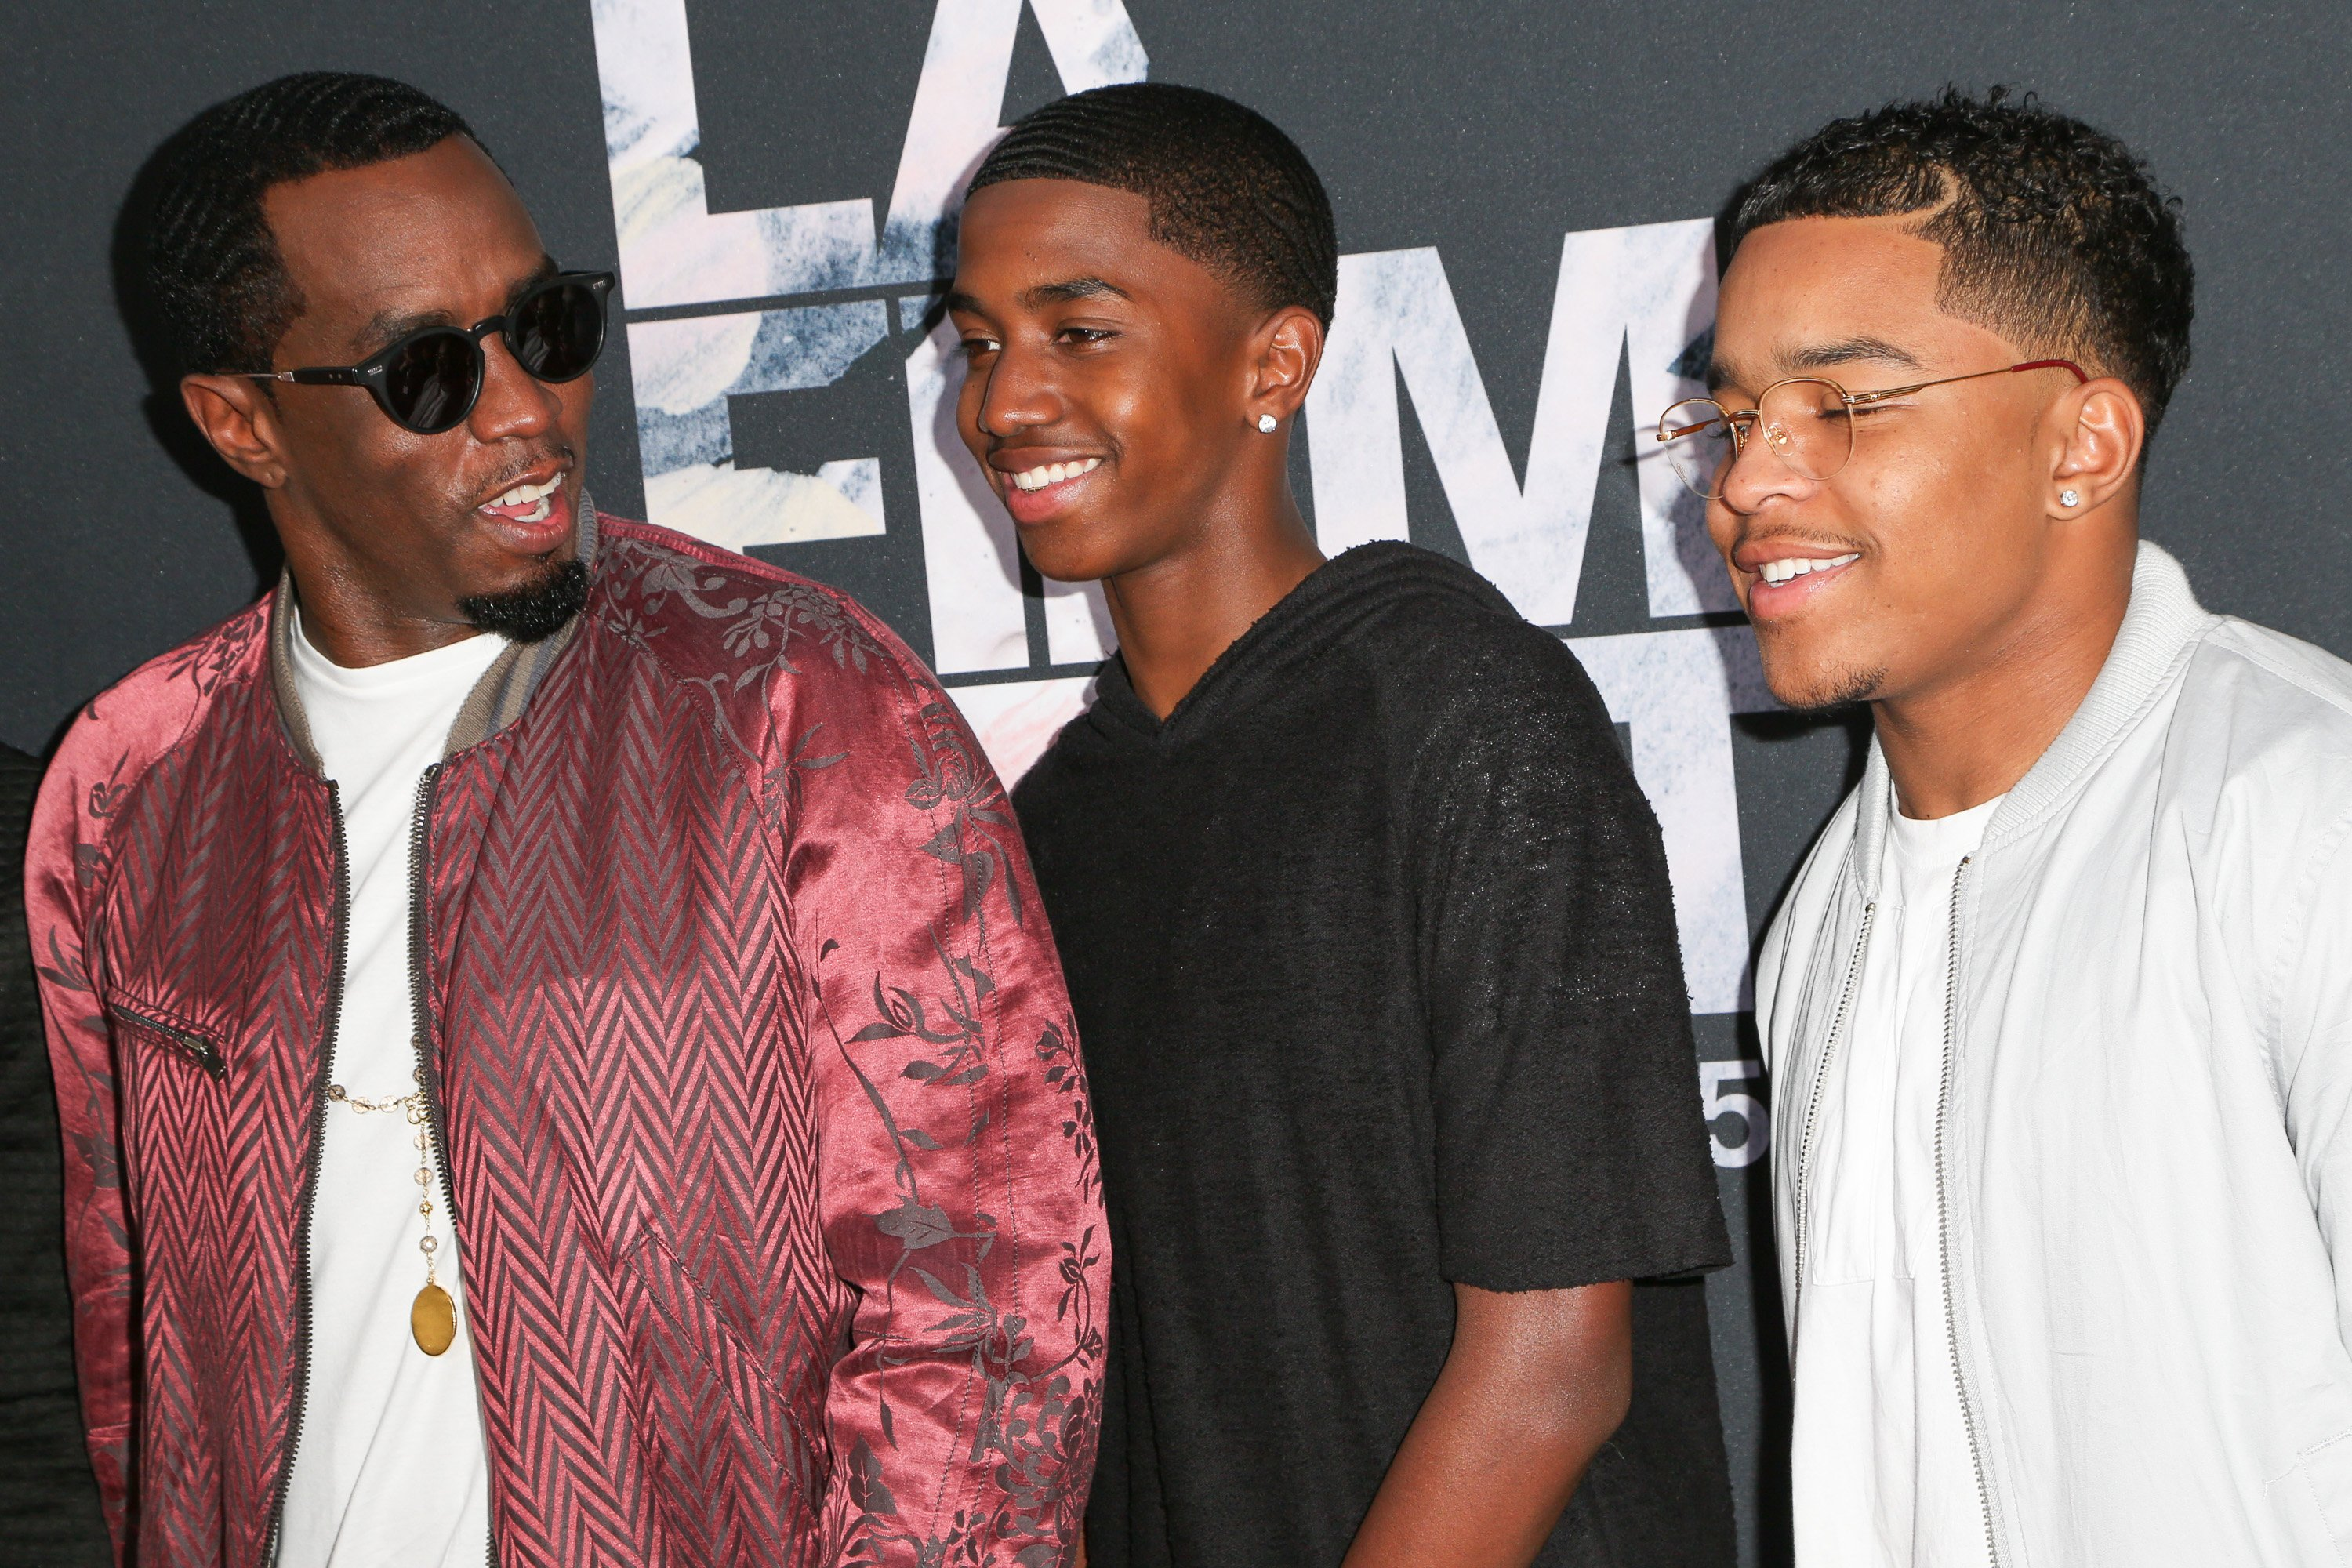 """Sean """"Diddy"""" Combs with sons Christian and Justin Combs at the Los Angeles Film Festival premiere of """"Dope"""" on June 8, 2015 in Los Angeles, California. 